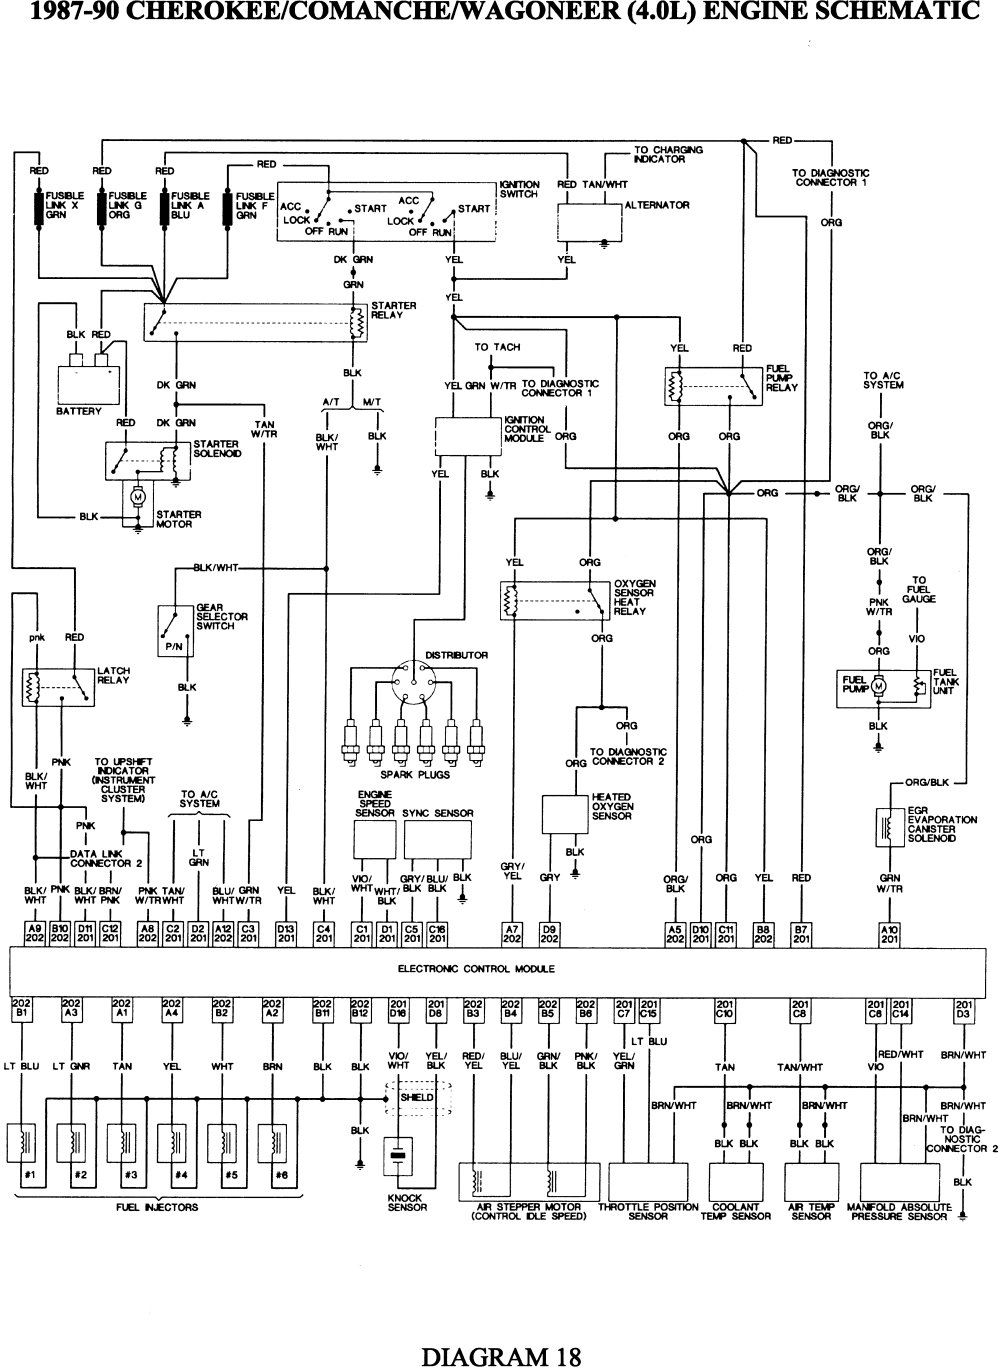 [QMVU_8575]  Jeep Transmission Wiring Diagram In 97 Wrangler - Wiring Diagram with 1990  Jeep Wrangler Wiring Diagram | 97 jeep wrangler, Jeep grand cherokee, Jeep  cherokee | 1990 Jeep Wrangler Starting System Wiring Diagram |  | Pinterest